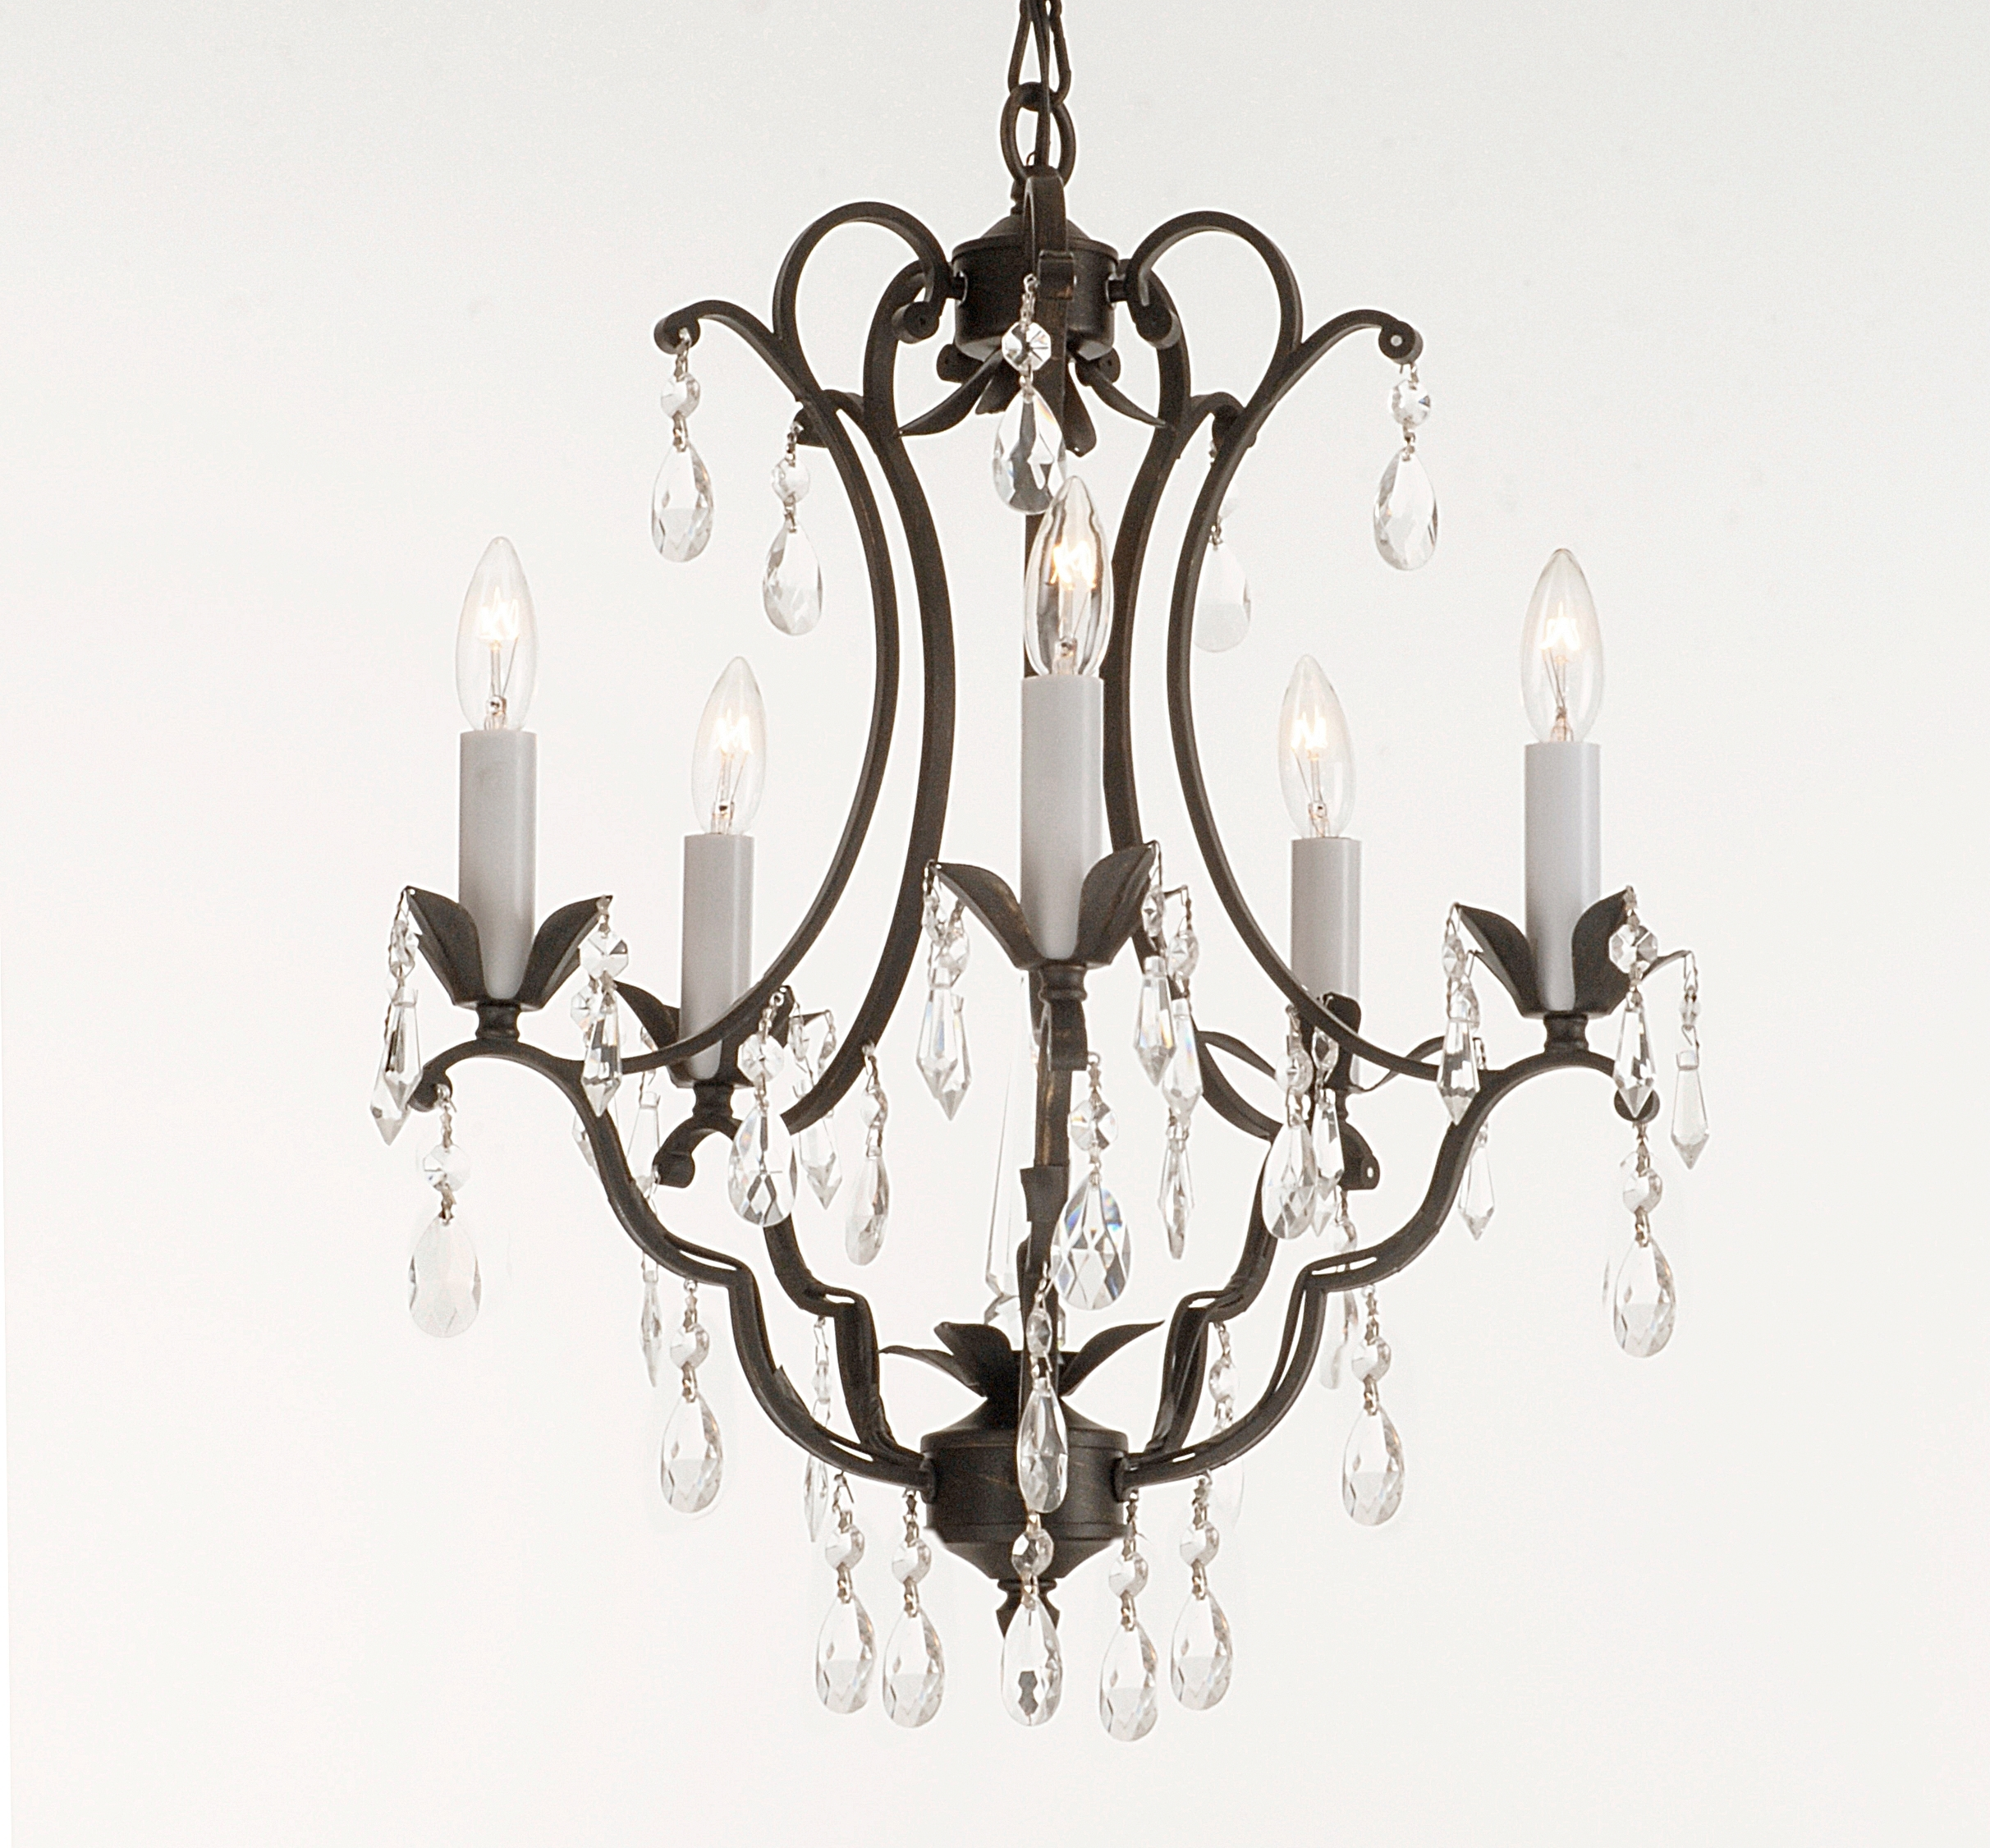 Vintage Black Chandelier with Fashionable Light : Furniture Vintage Look Modern Black Wrought Iron Chandeliers